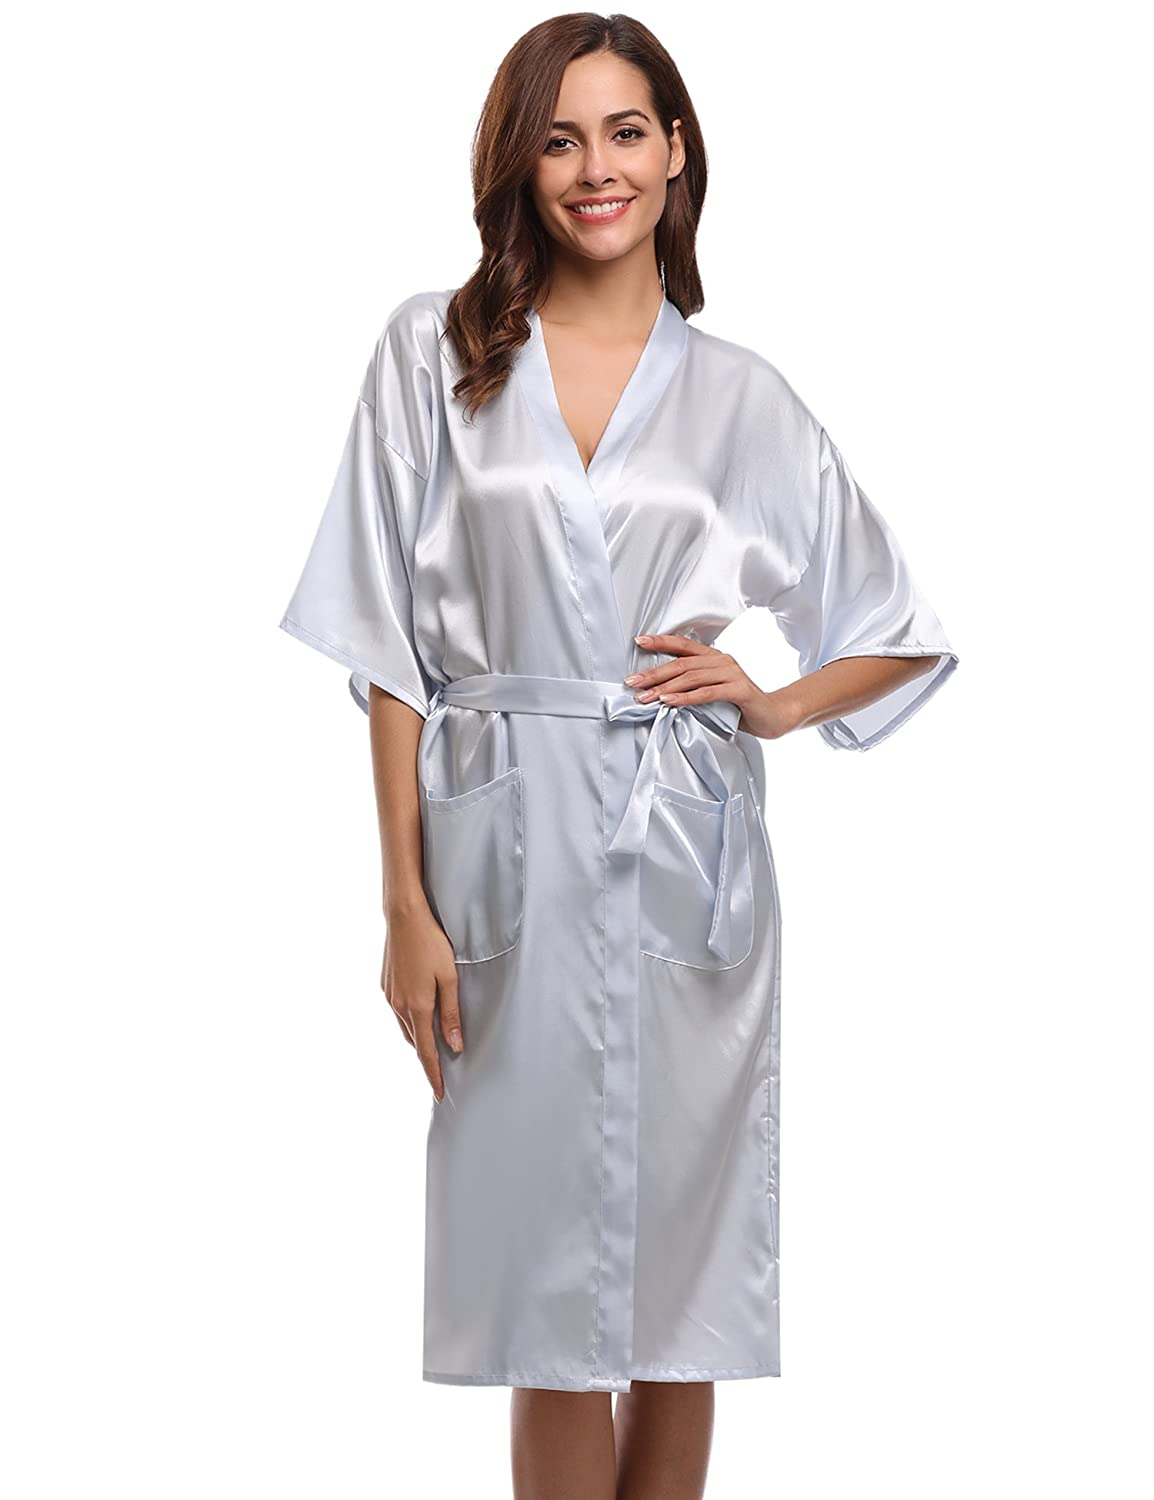 Aibrou Women's Kimono Robe Long Dressing Gowns Classic Satin Wedding Bathrobes Nightwear